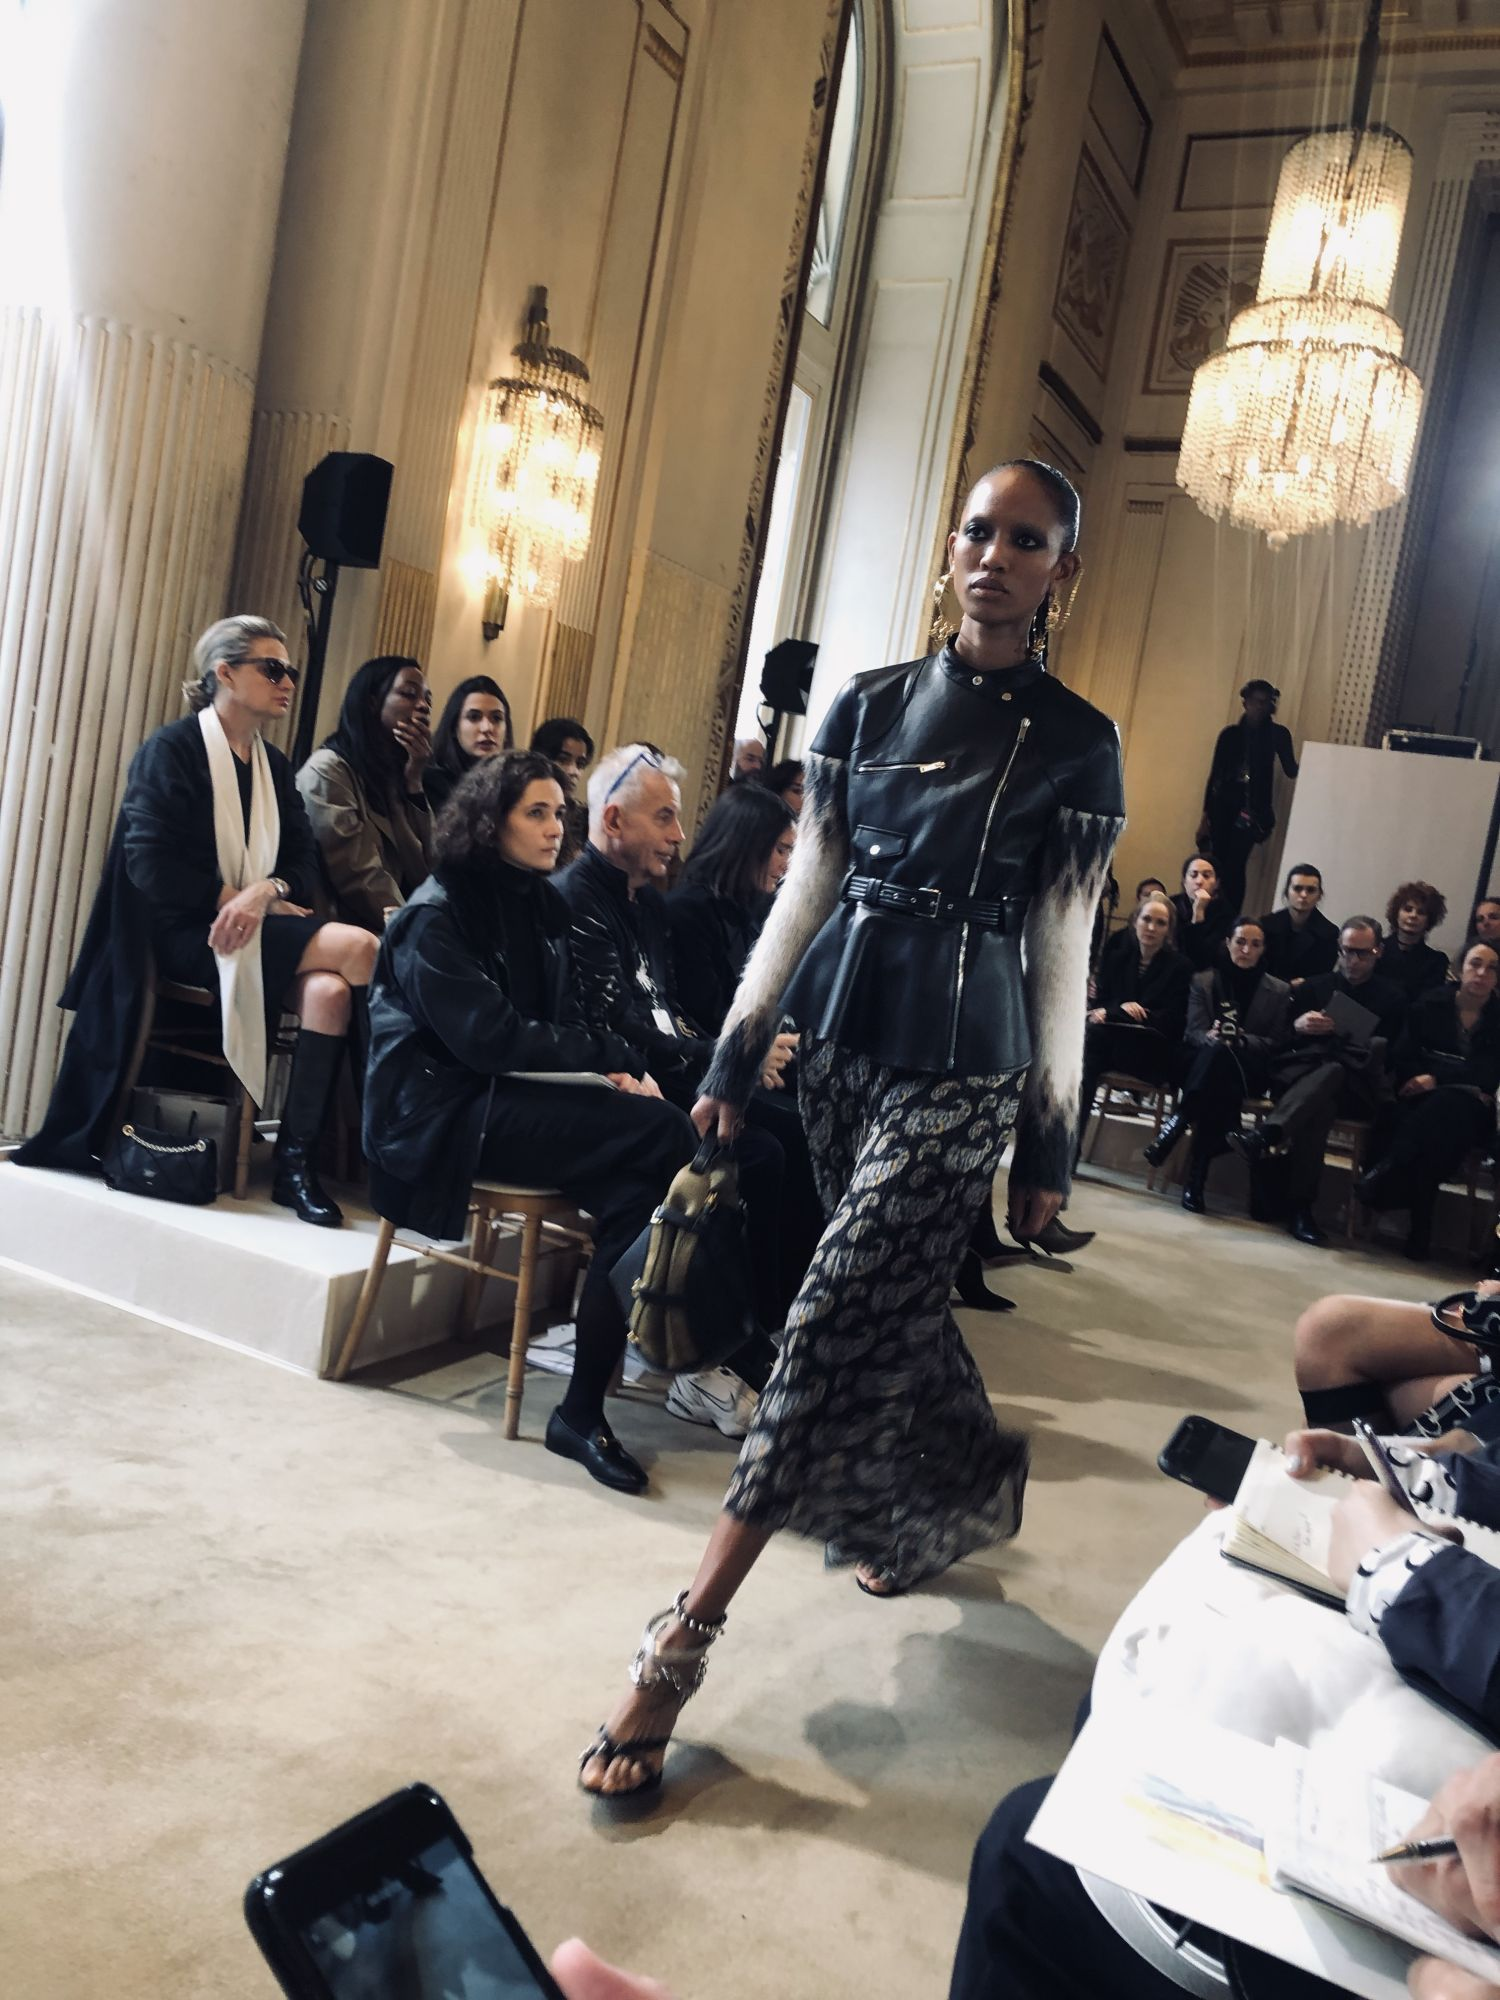 Paris Fashion Week Fall/Winter 2019: Day 5 Highlights